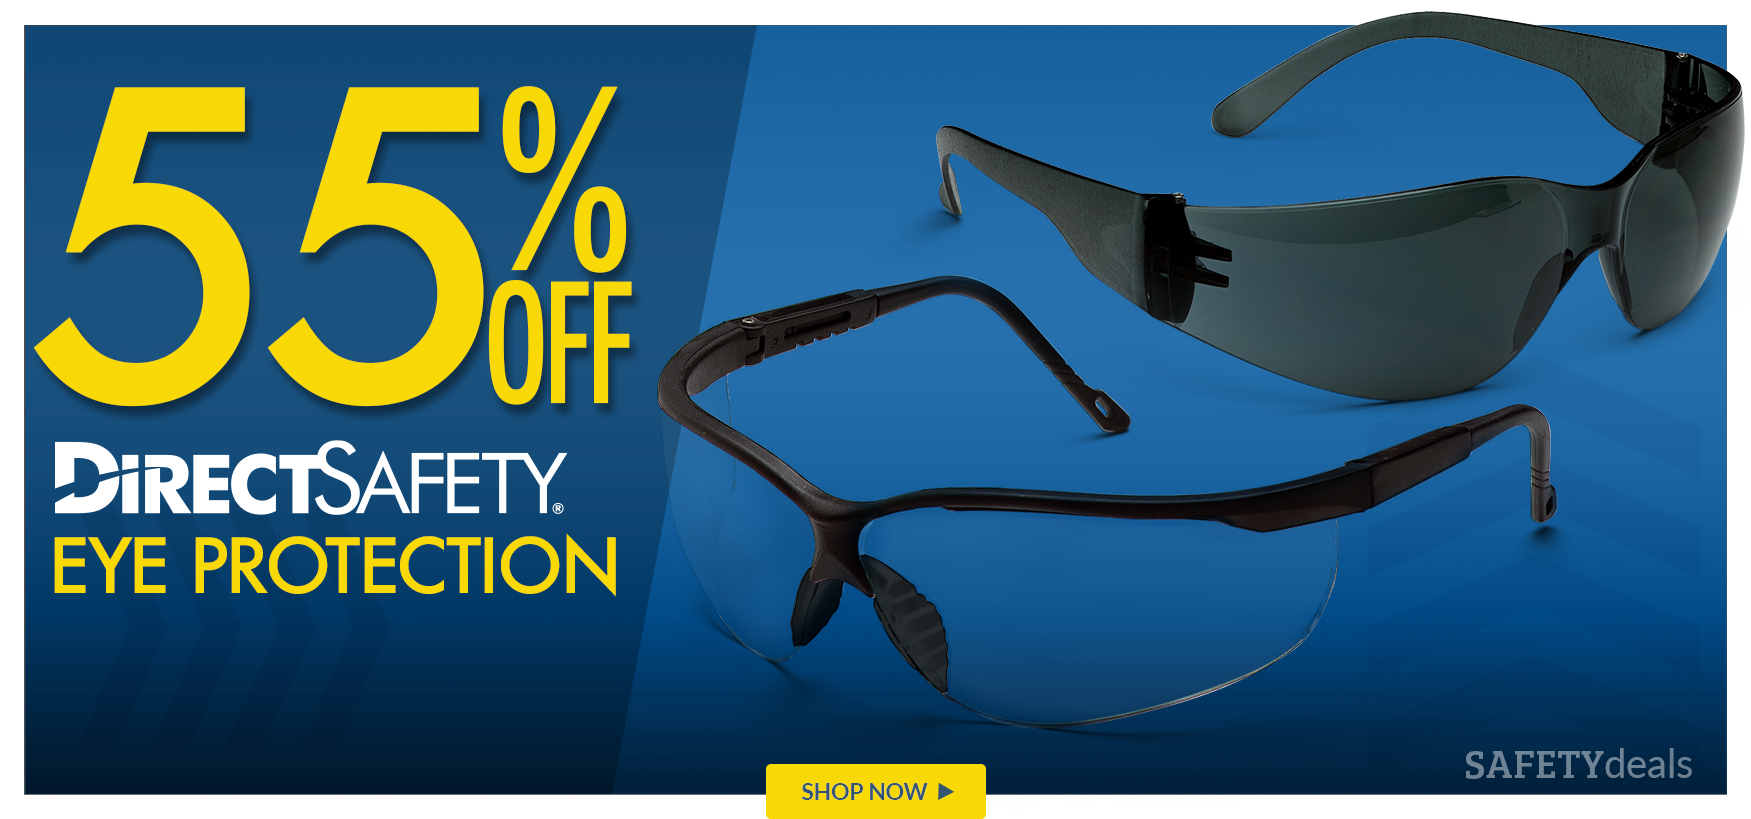 Save 55% on DirectSafety Eye Protection